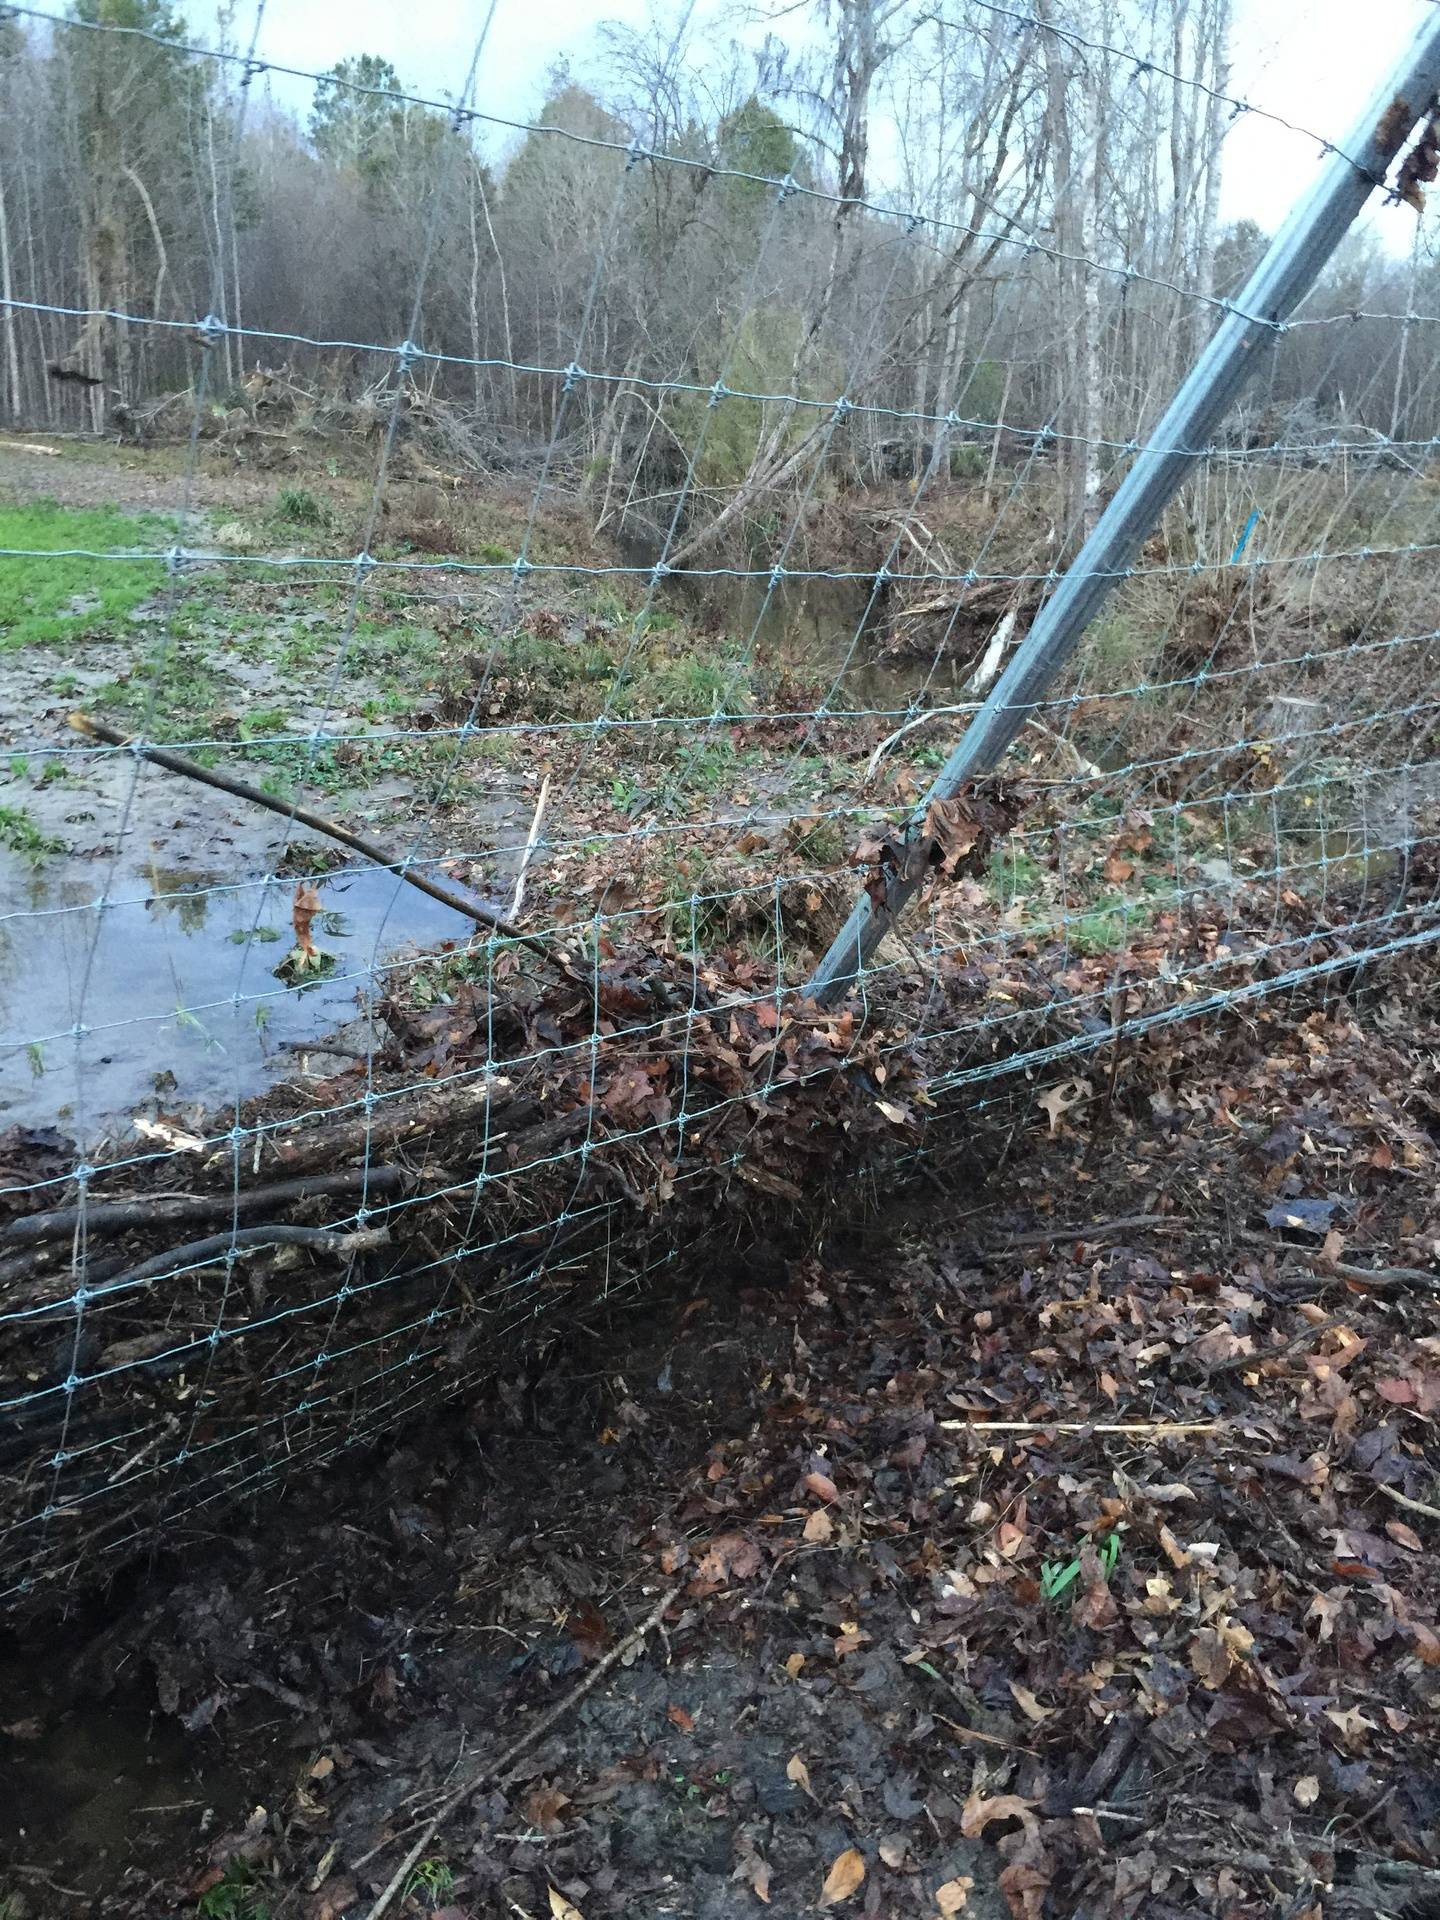 Debris in fence